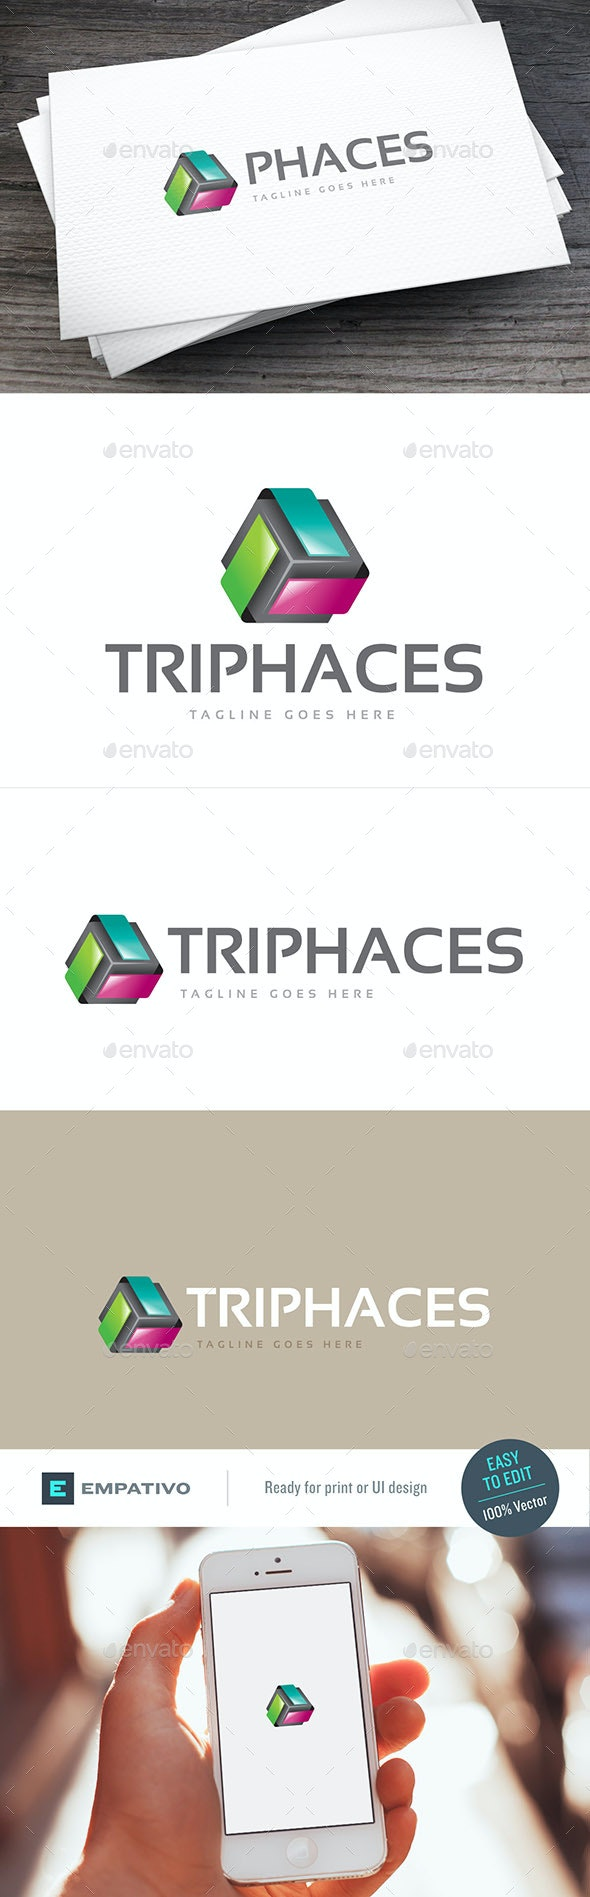 Triphaces Logo Template - Abstract Logo Templates